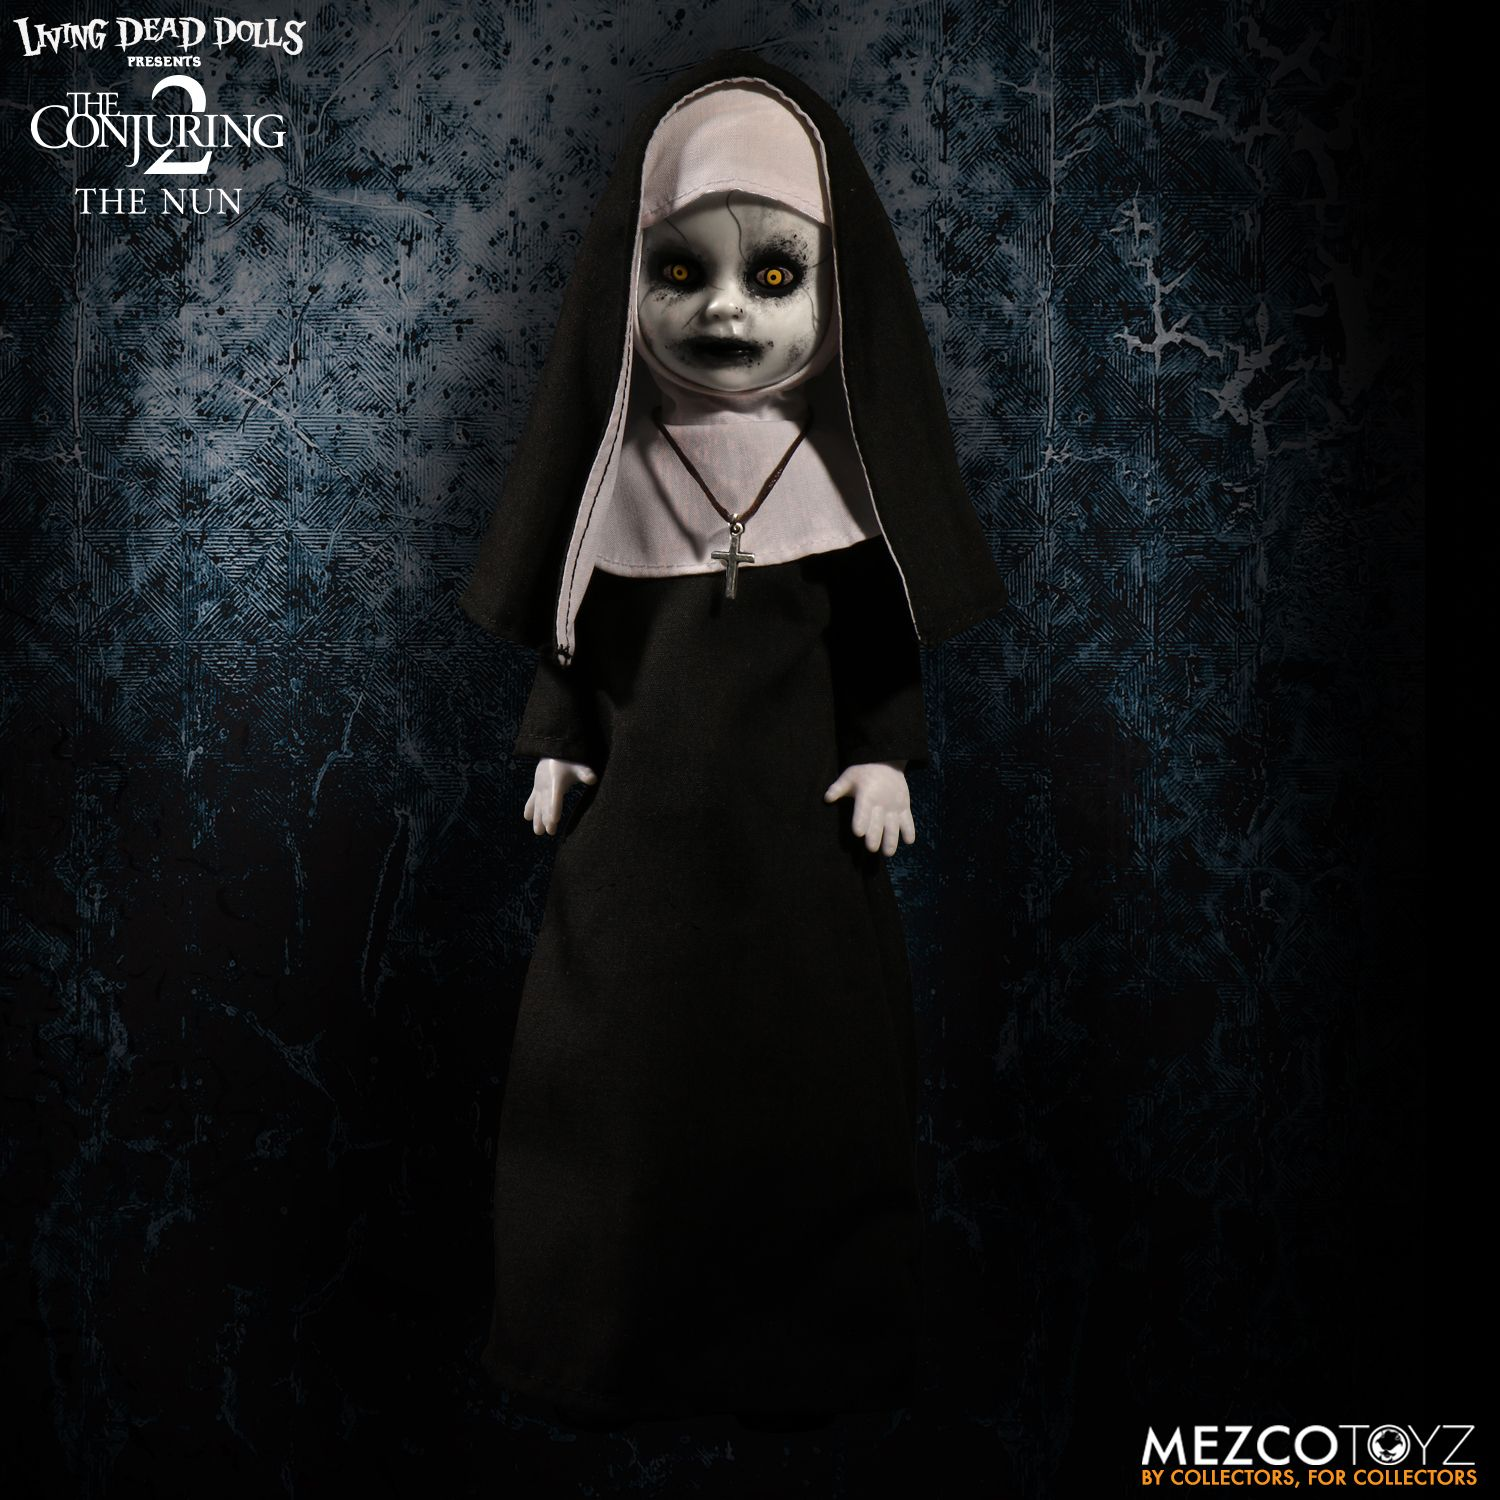 Mezco Conjuring The Nun Living Dead Doll